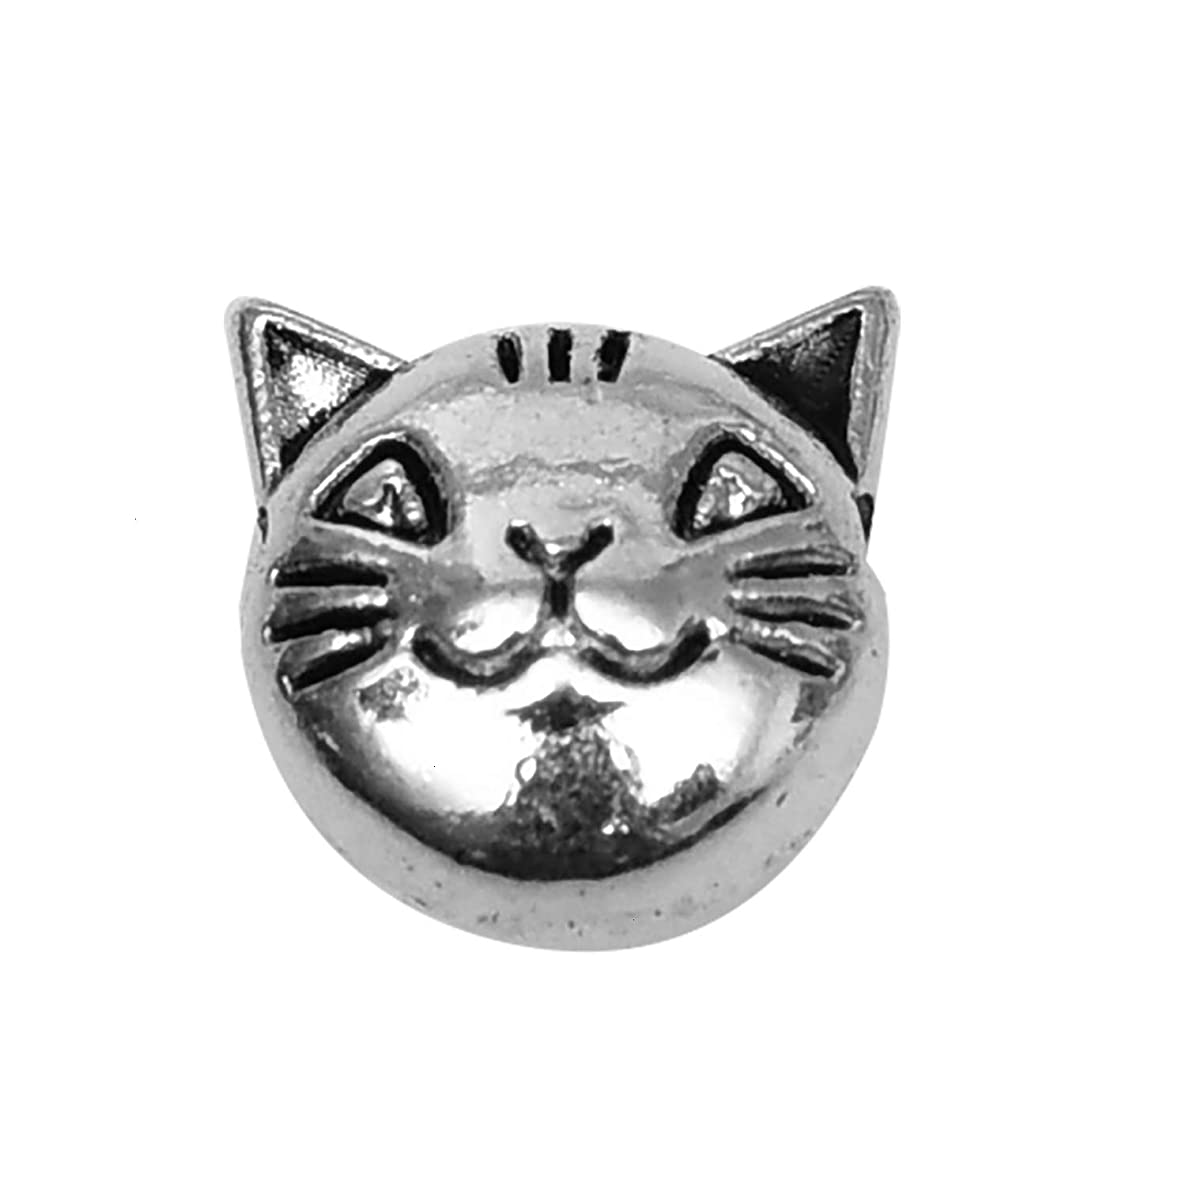 Monrocco 40 Pcs Tibetan Metal Animal Charm Beads Antique Silver Cat Spacer Beads for DIY Jewelry Craft Making Bracelet